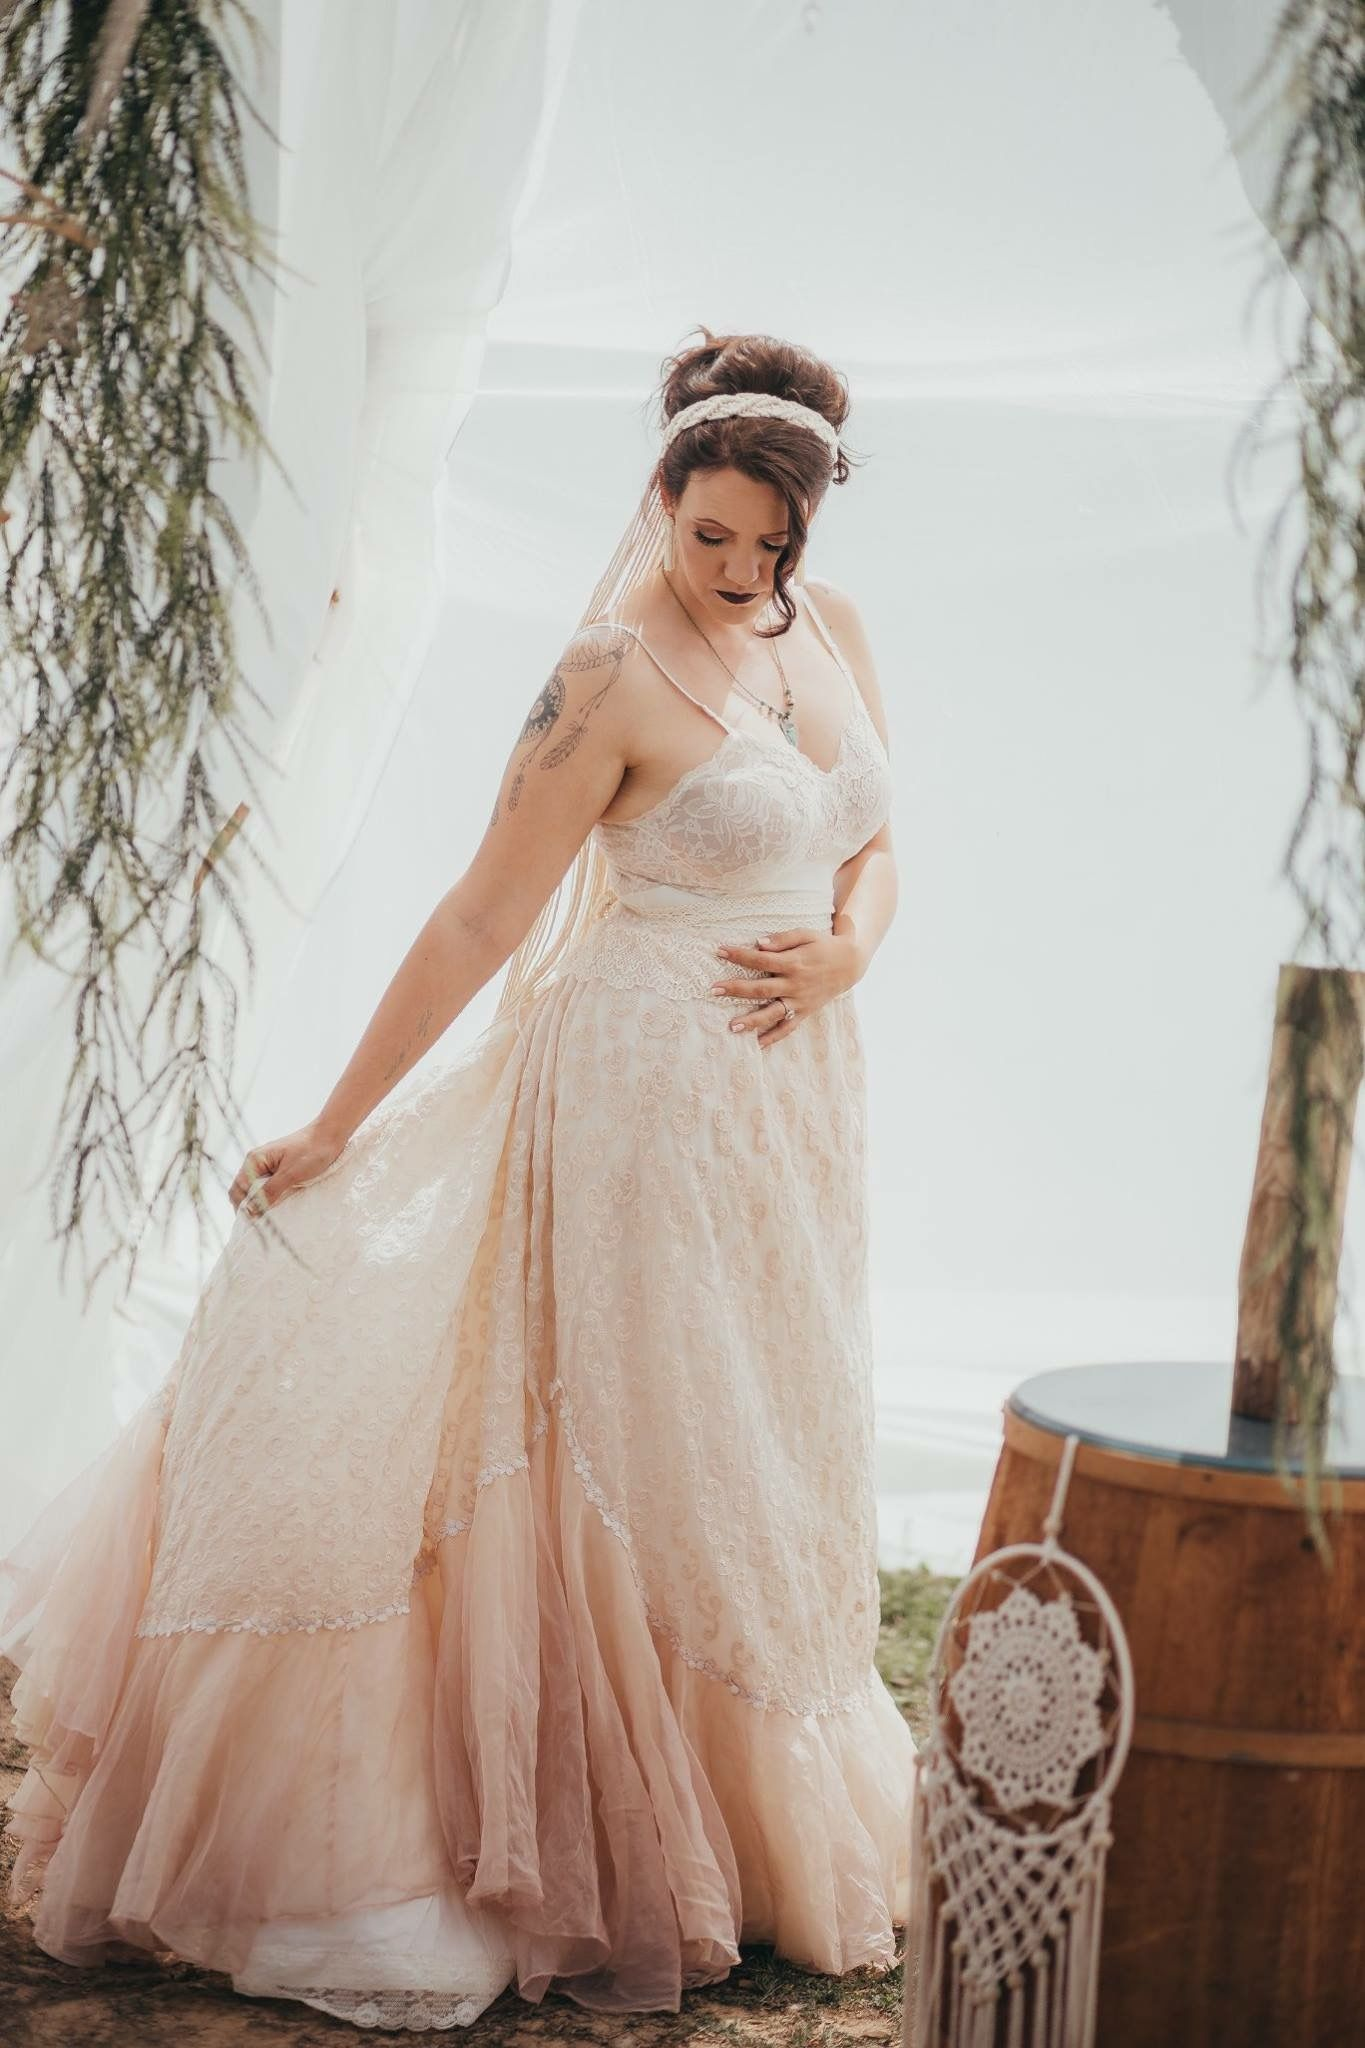 Boho hippie wedding dress  Boho wedding bohemian wedding boho wedding dress boho groom